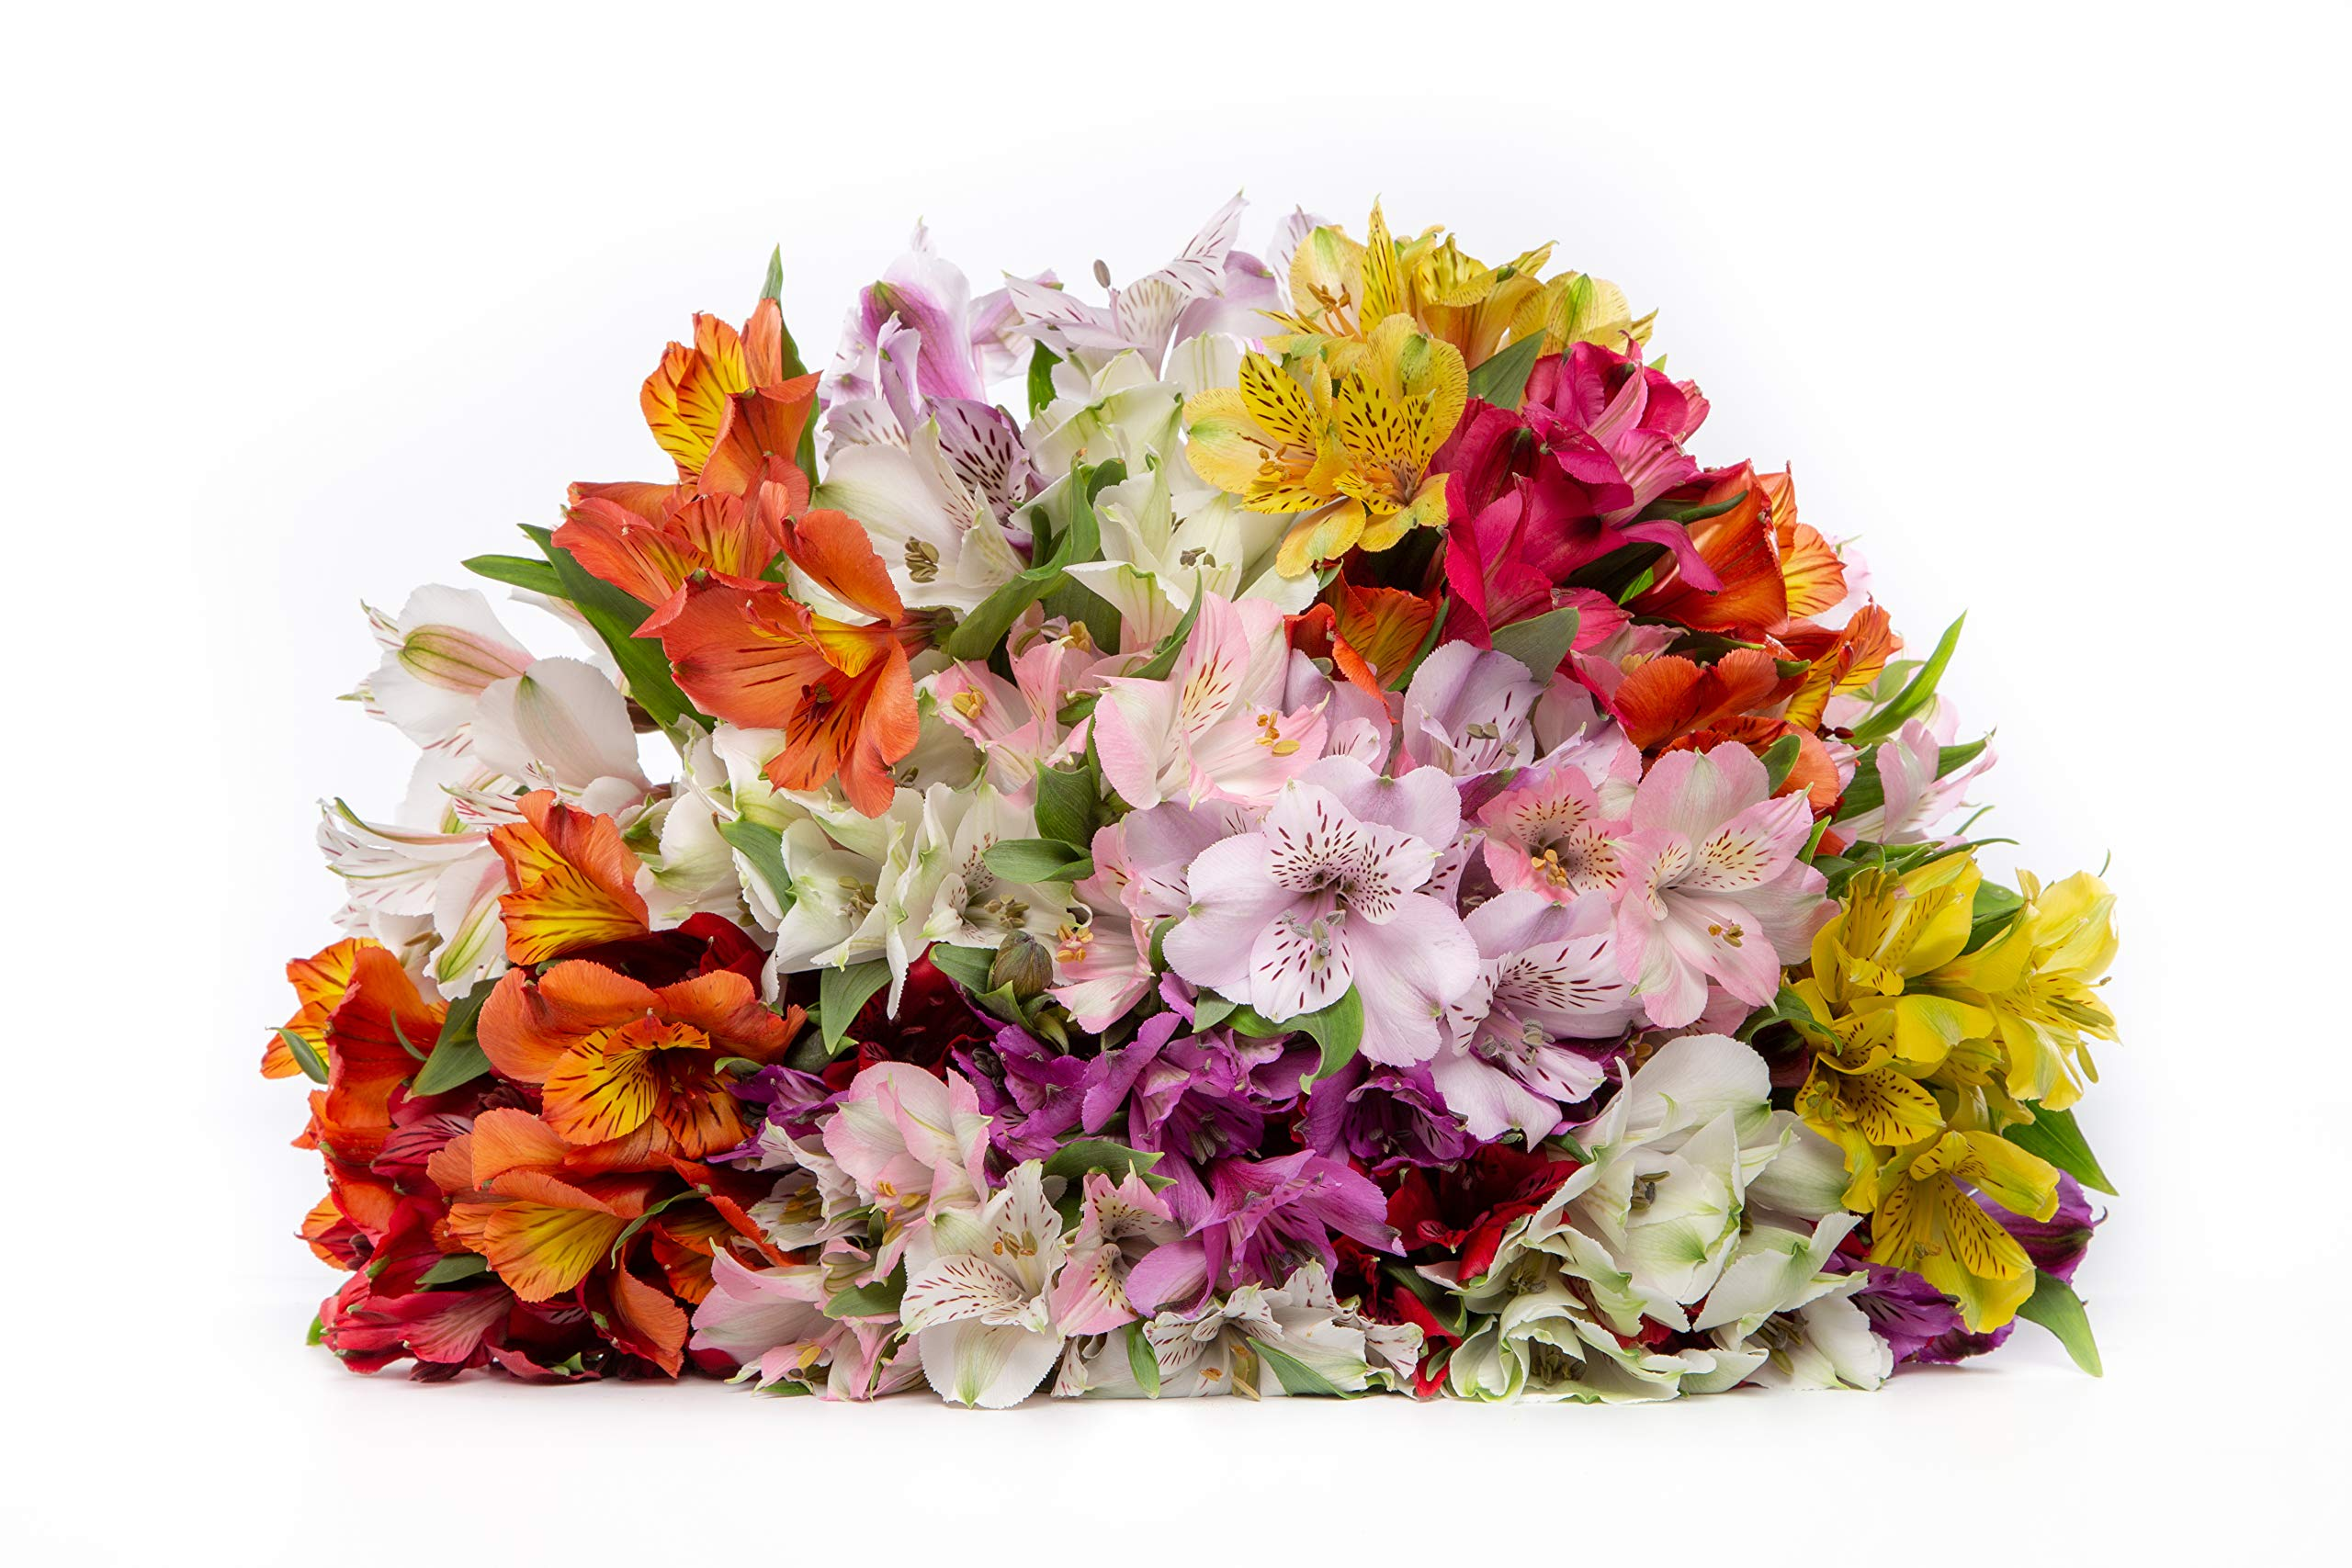 Rainbow Fields Multicolored Alstroemeria Bouquet Full Flowers Sustainably Grown and Harvested, No Vase Included